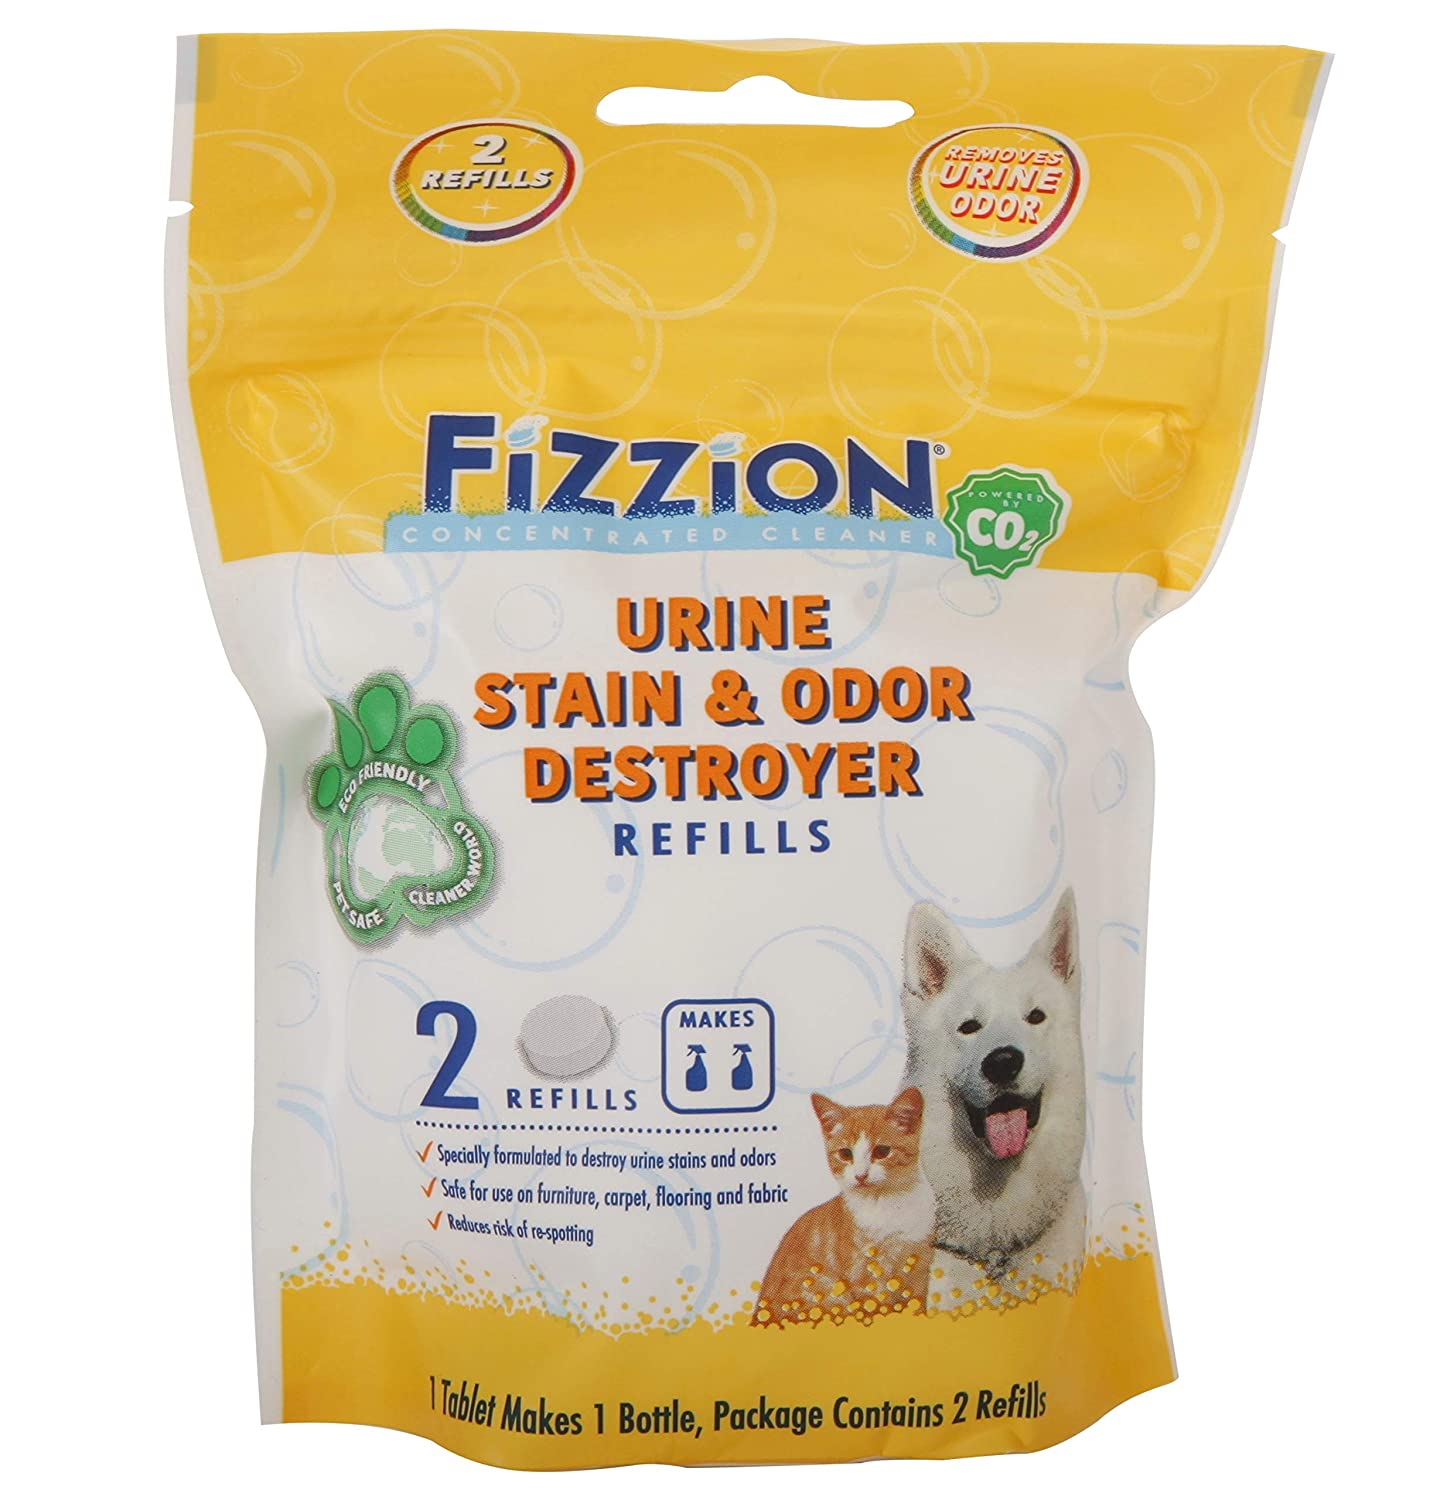 Fizzion Urine Pet Stain and Odor Destroyer Removes Pet Urine Stains and Odors Safely with The Professional Cleaning Power of CO2 2 Tablets